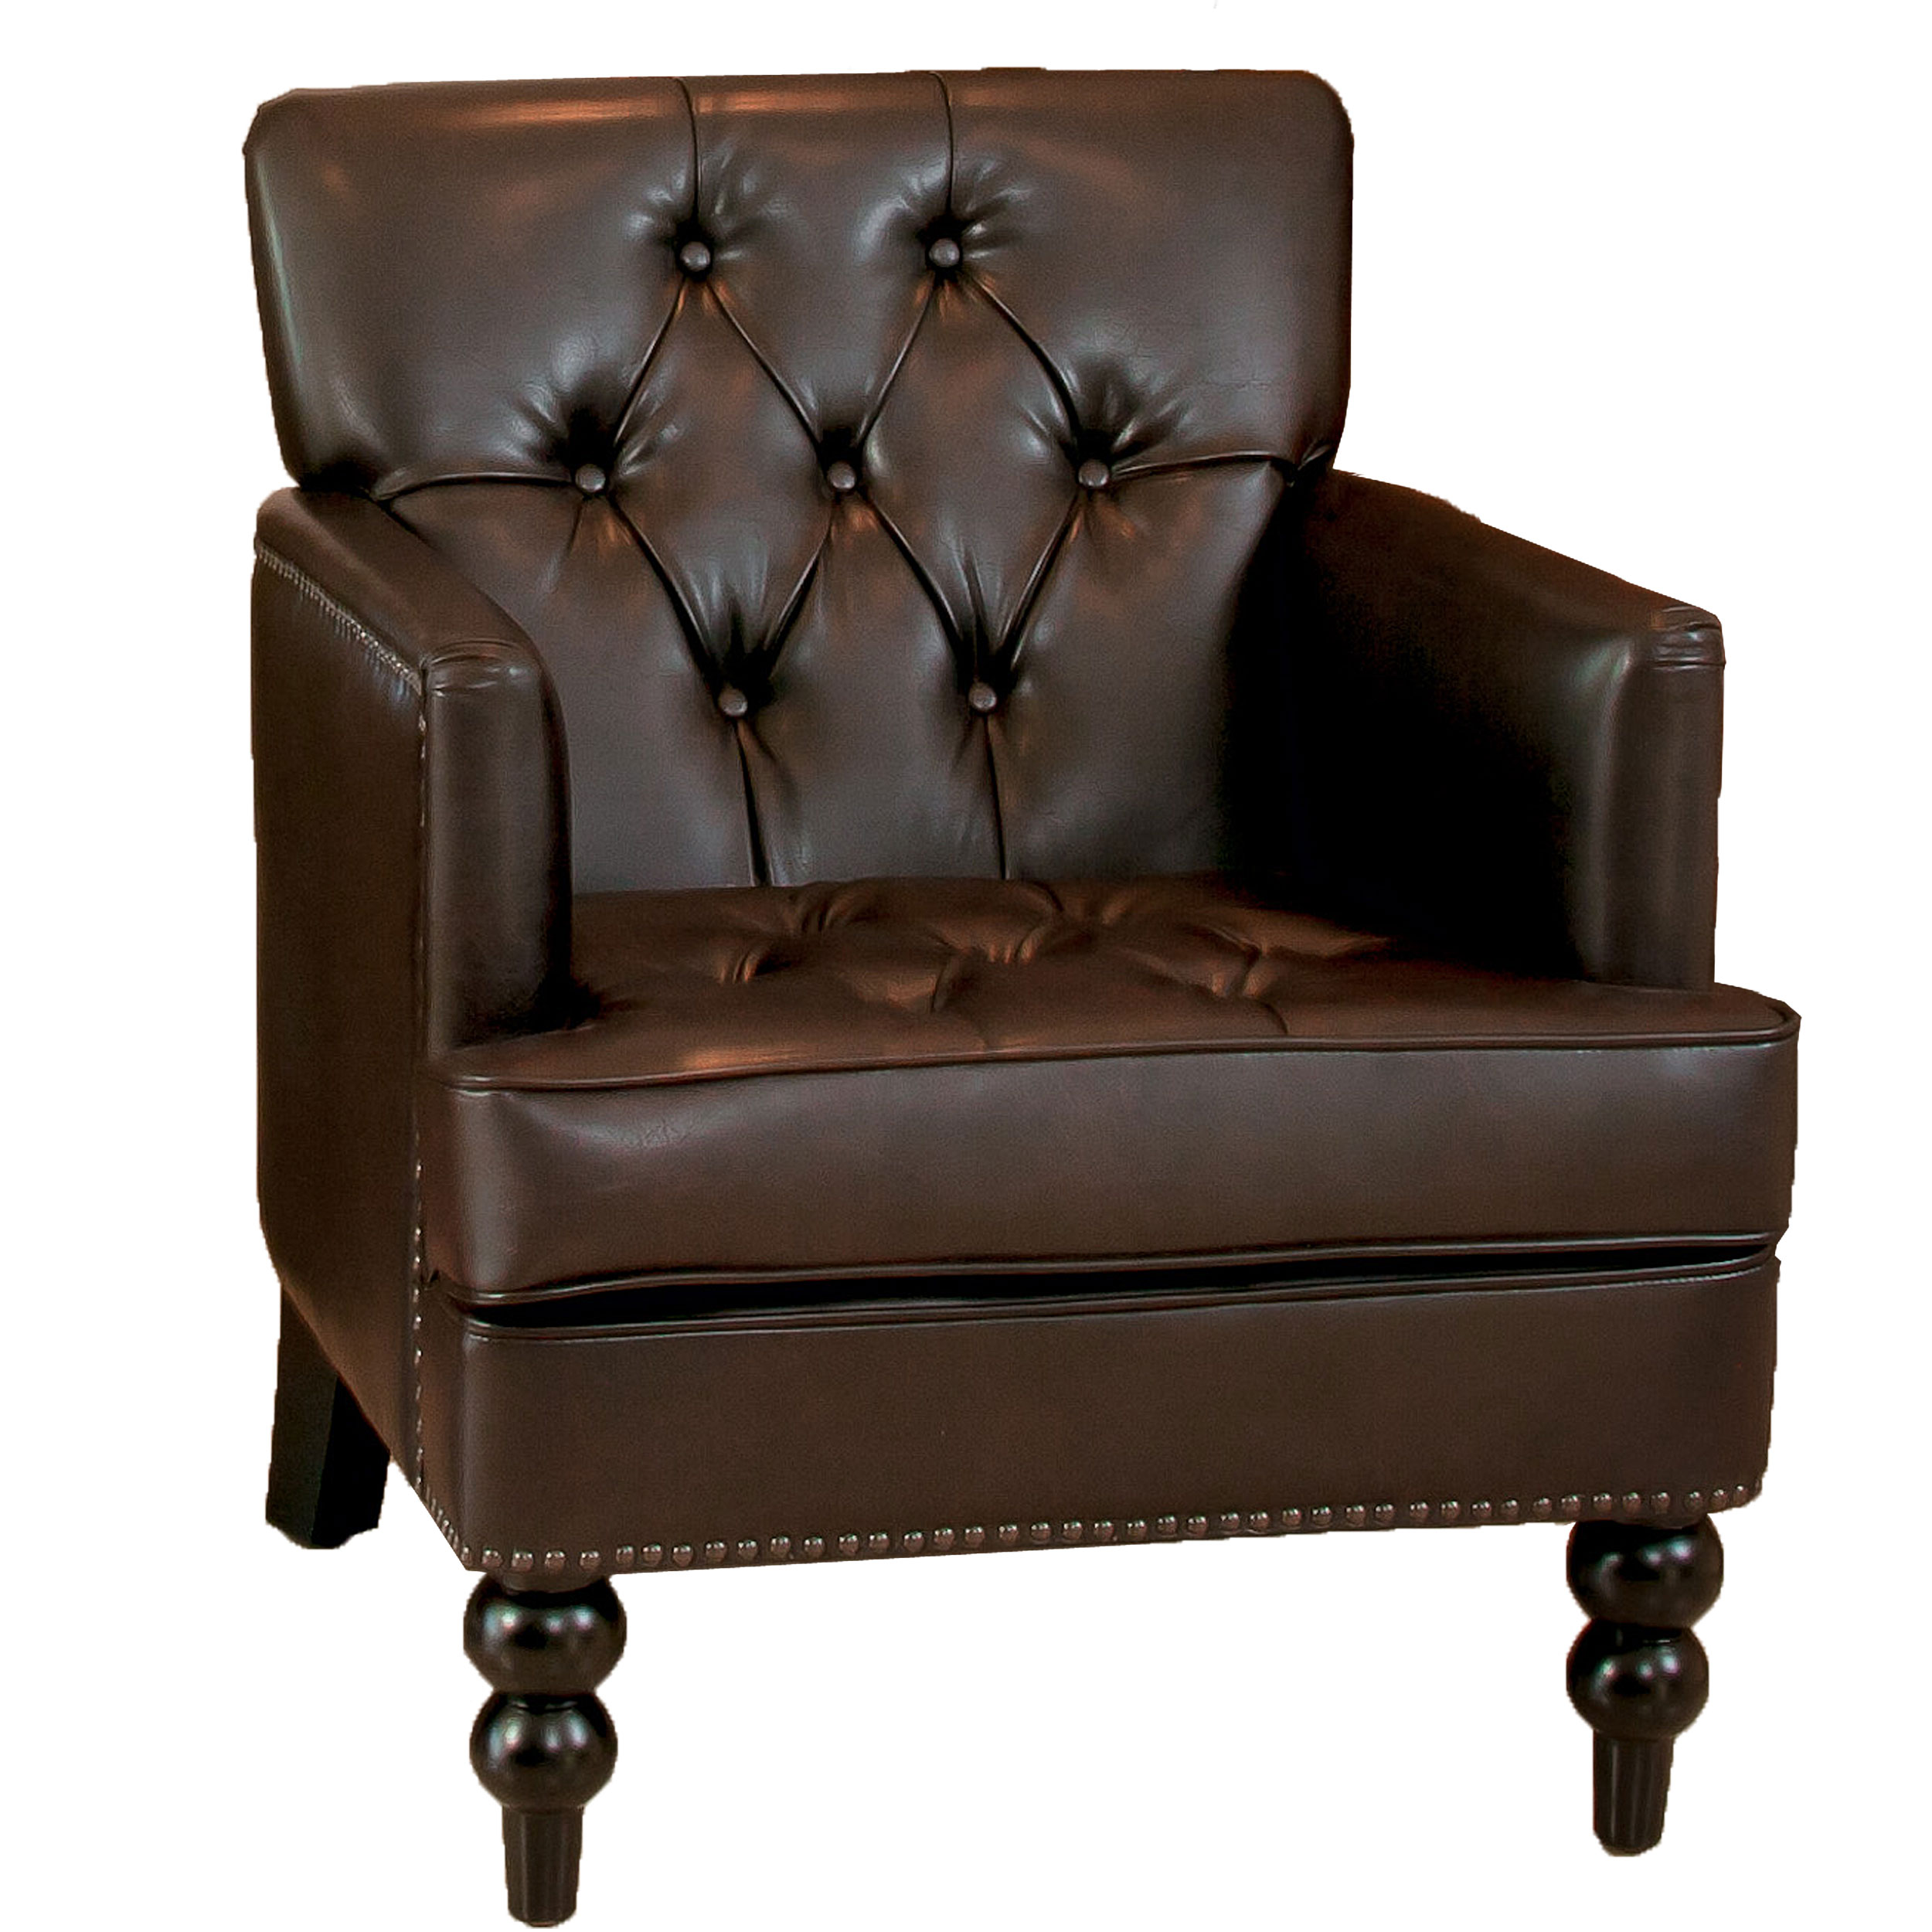 Denise Austin Home Randi Brown Bonded Leather Club Chair by GDF Studio